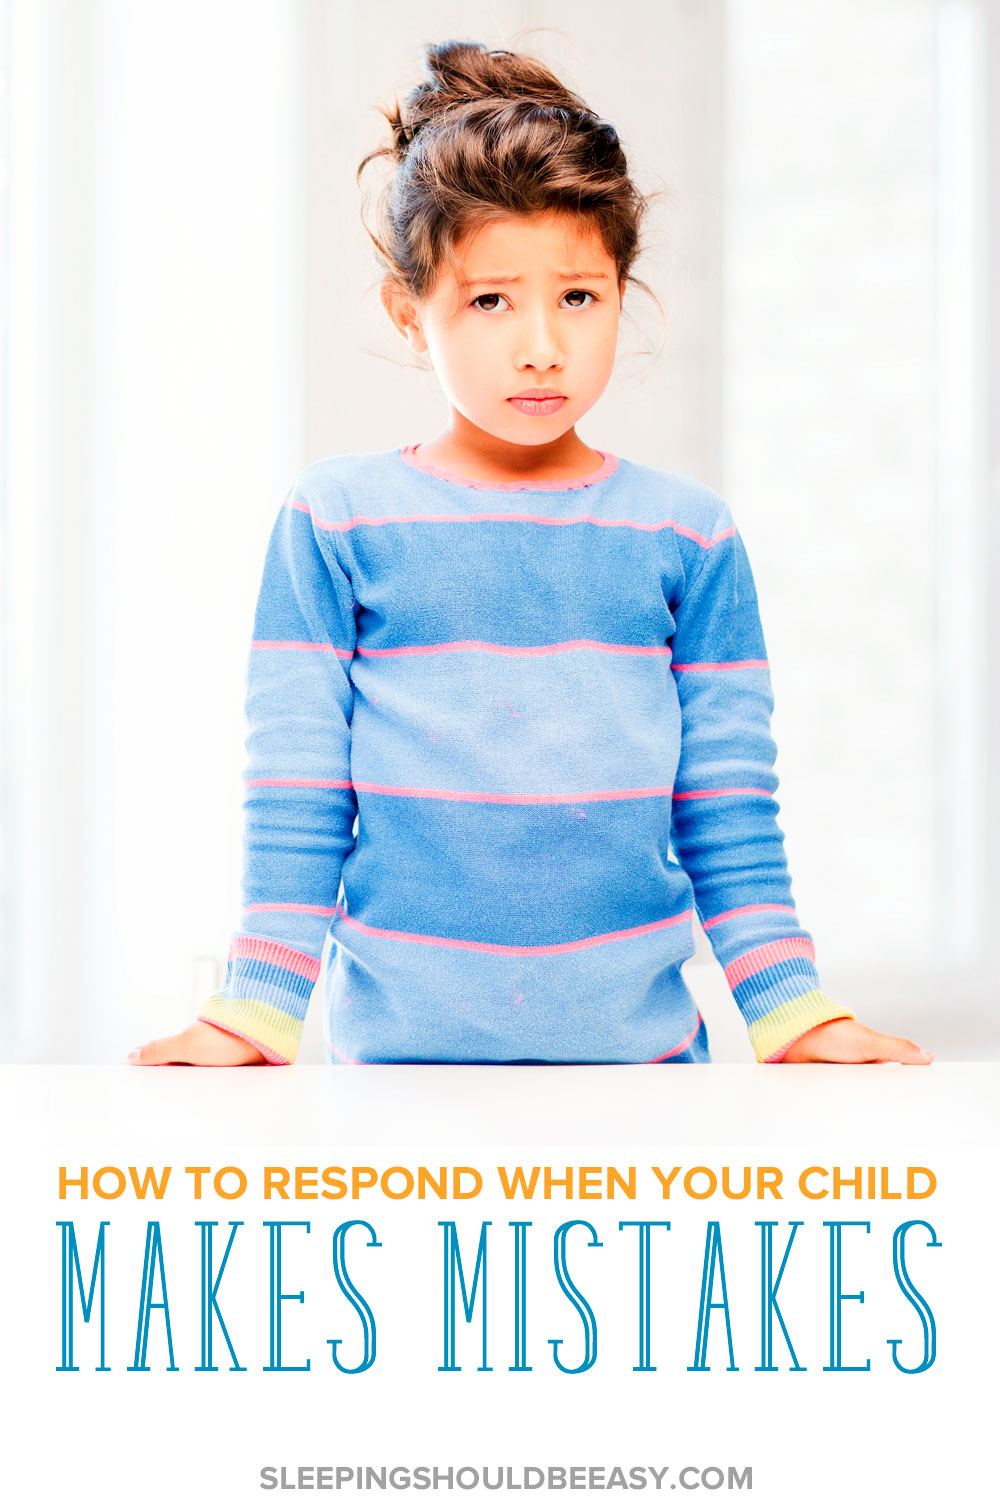 How to respond when kids make mistakes